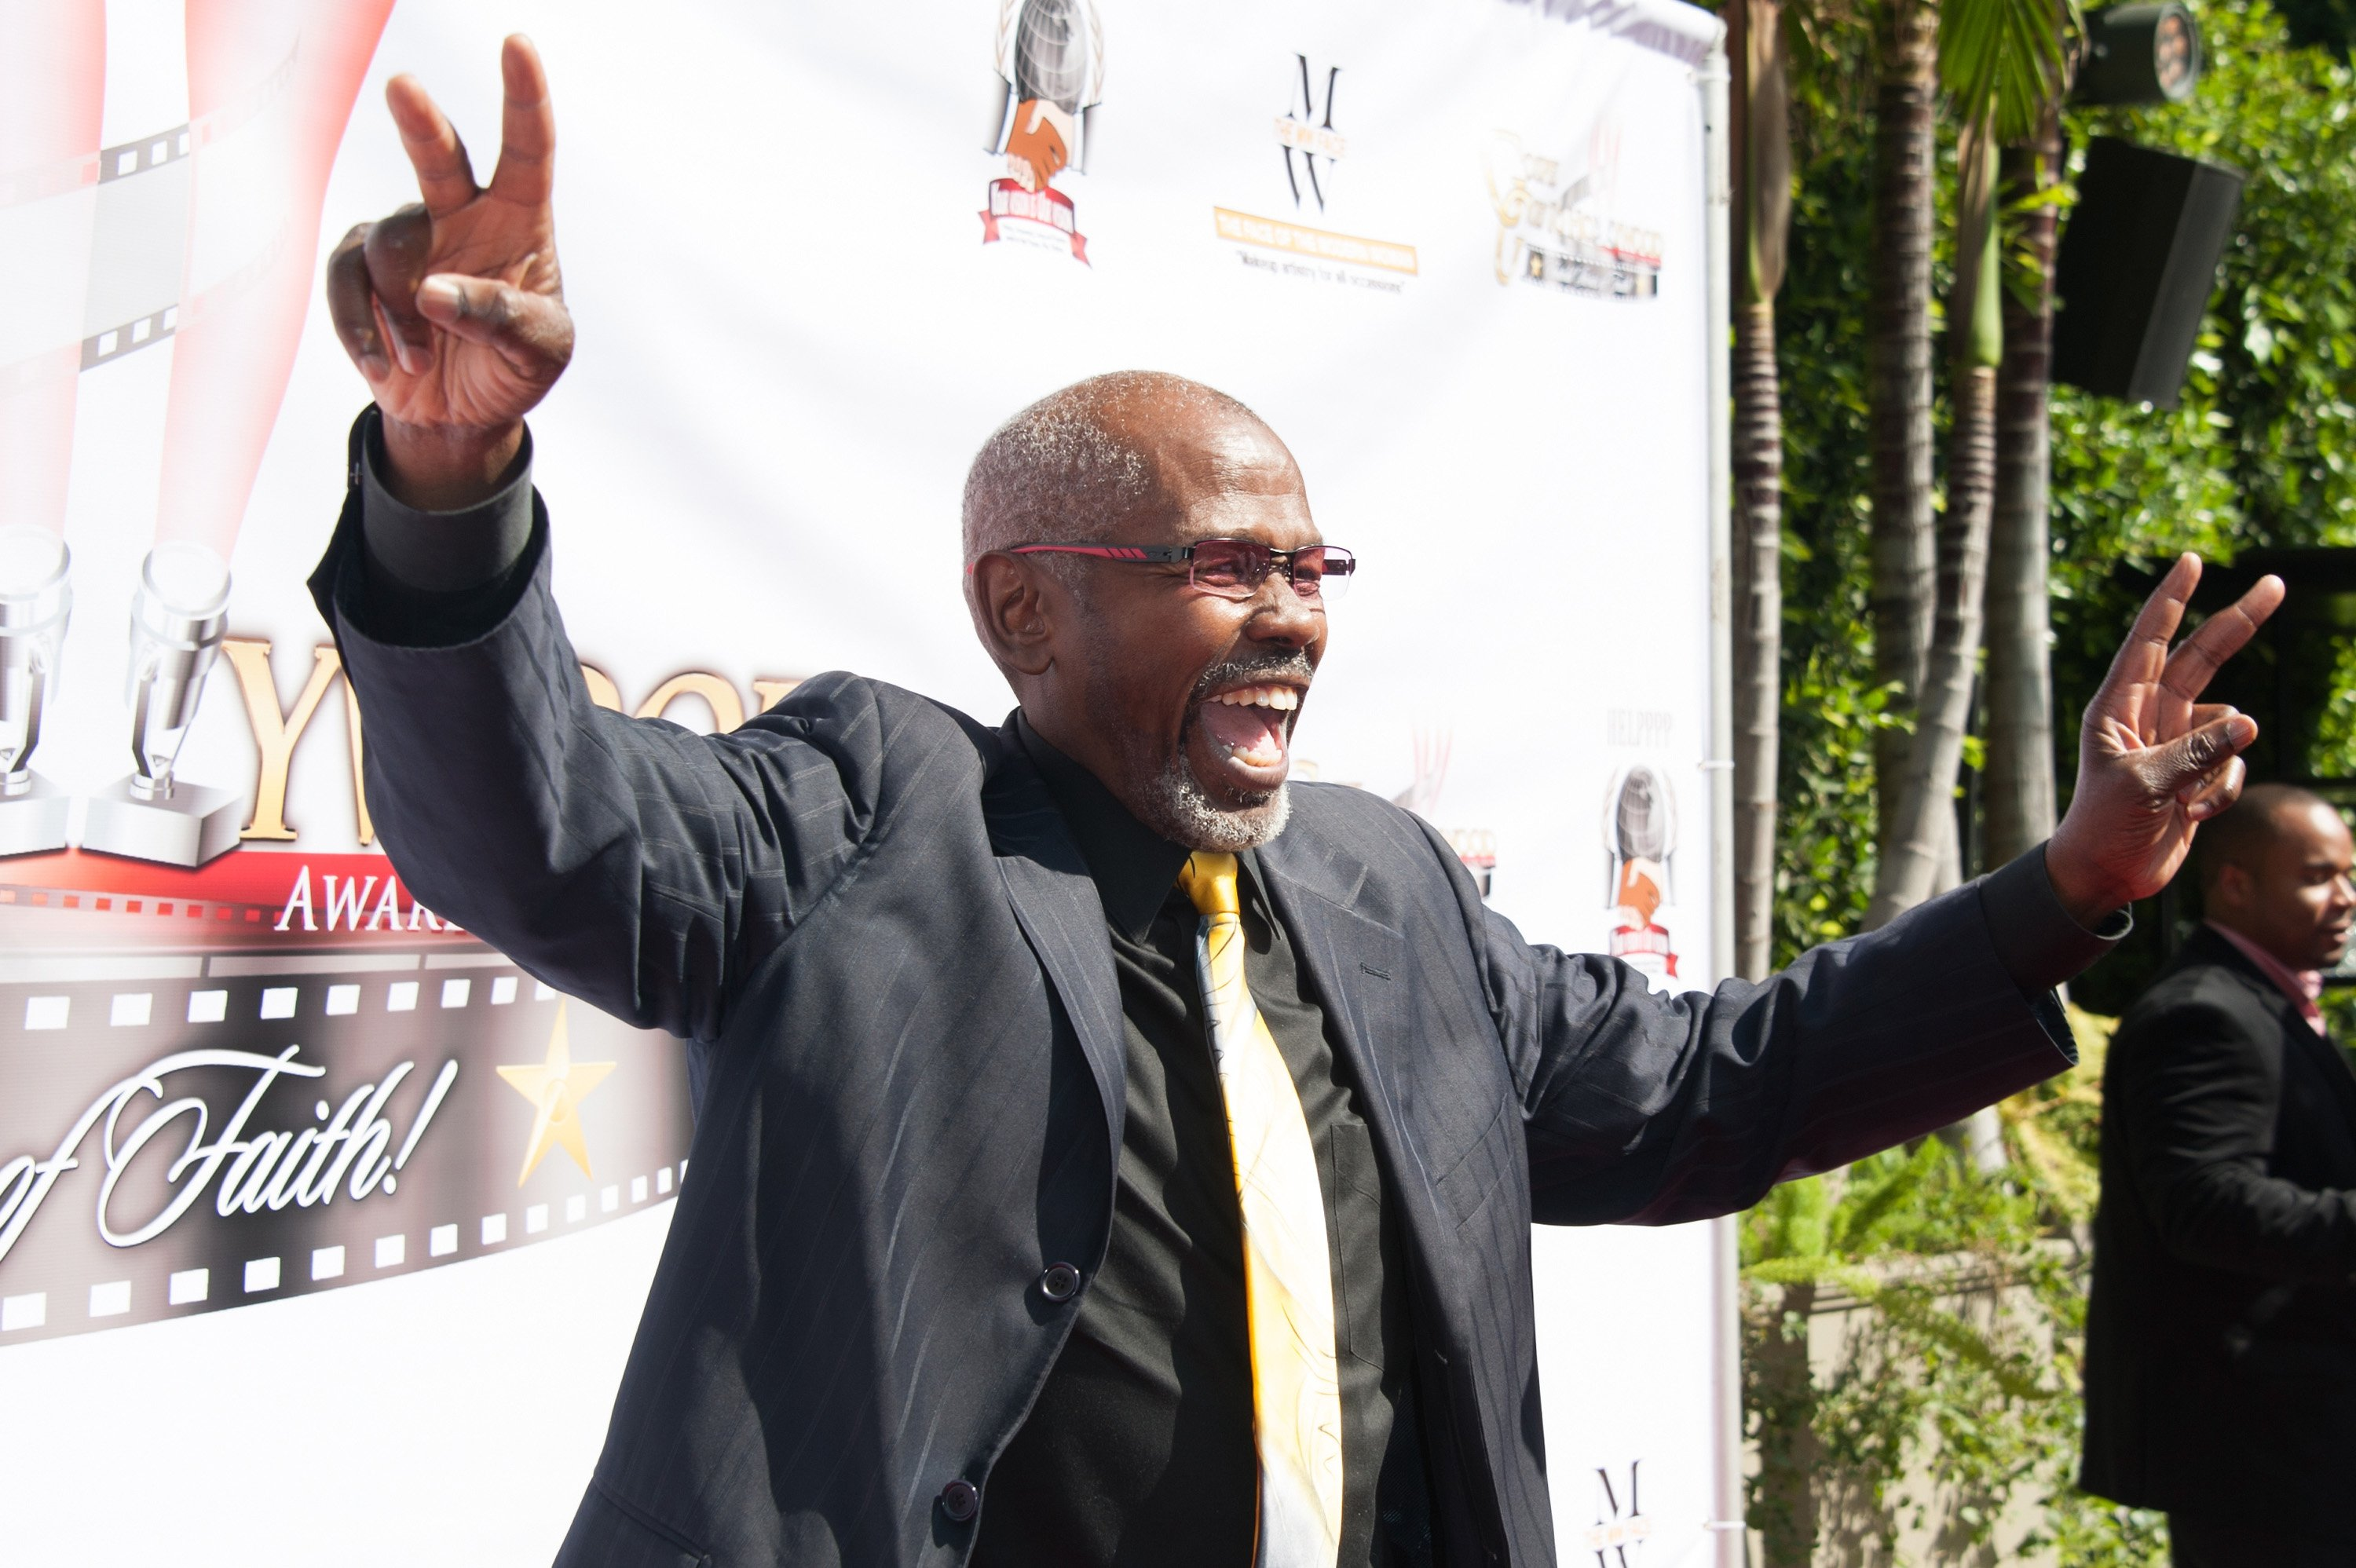 Actor Ernest Lee Thomas arrives at the Gospel Goes To Hollywood event at the Vibiana on February 26, 2016 |Photo: Getty Images